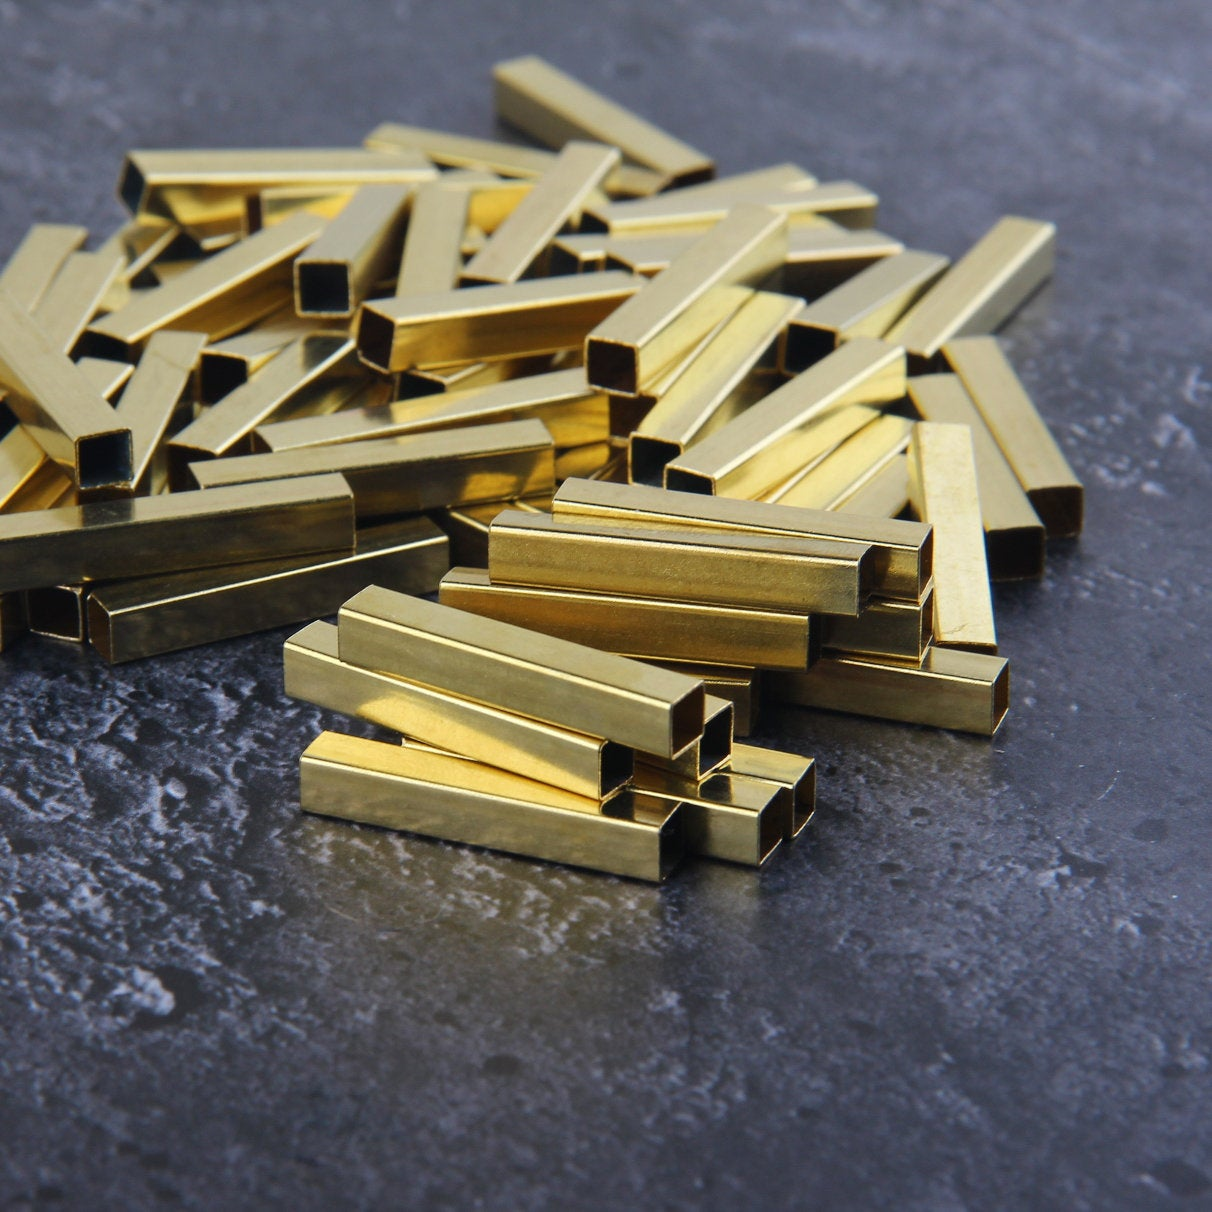 Tubular Cube Raw Brass, Raw Brass Tube, Tubular Beads, Cube Raw Brass, 8 pcs 5x30 mm // RAW-126